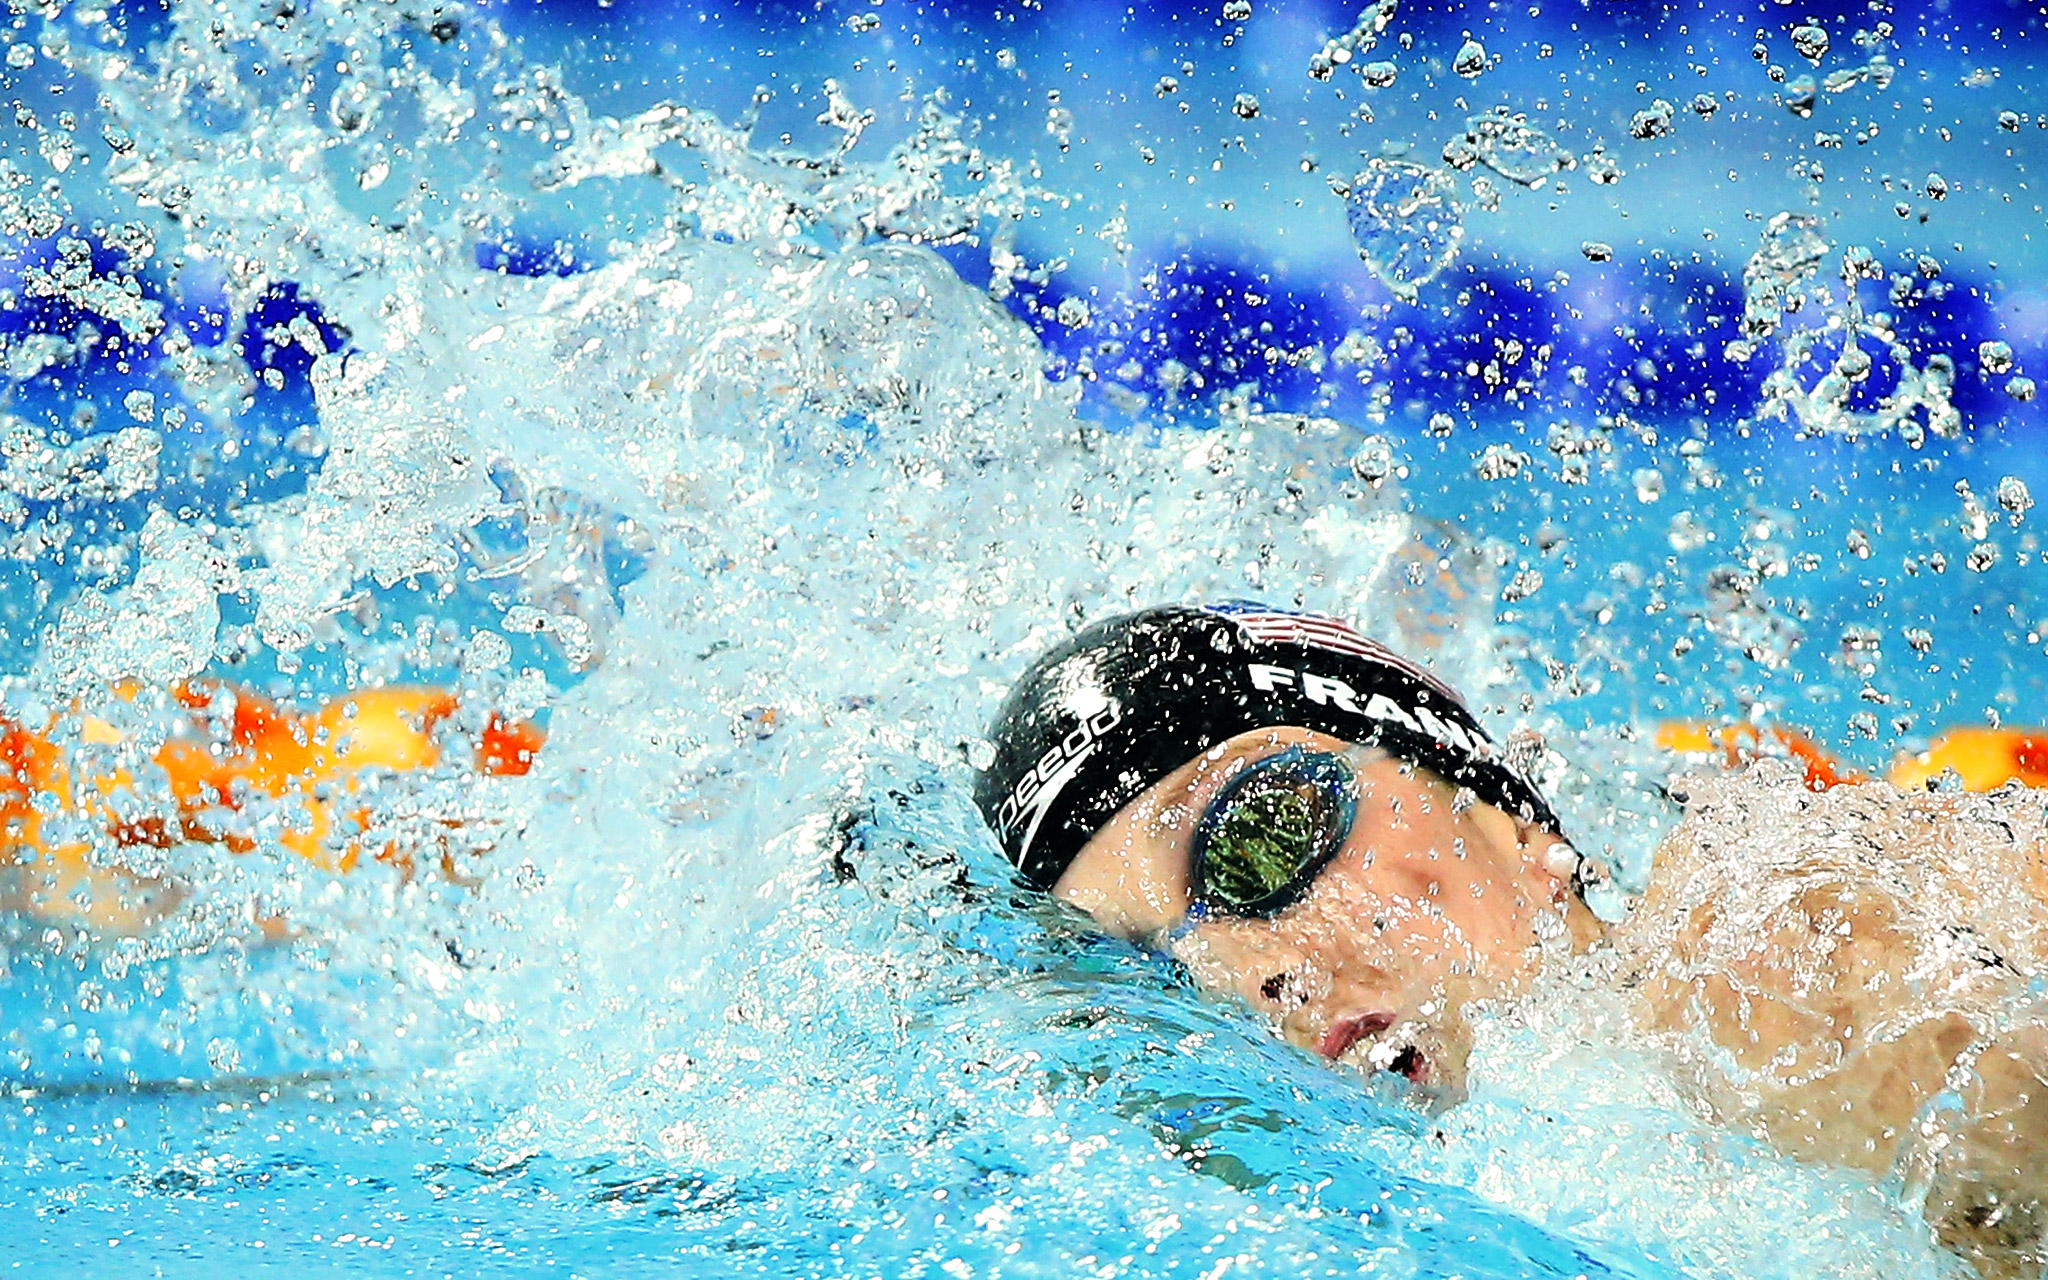 American Missy Franklin swims in the women's 200-meter freestyle B final during Day 1 of the Pan Pacific championships at Gold Coast Aquatics in Australia.  Franklin, hampered by back spasms, didn't qualify for the A final.